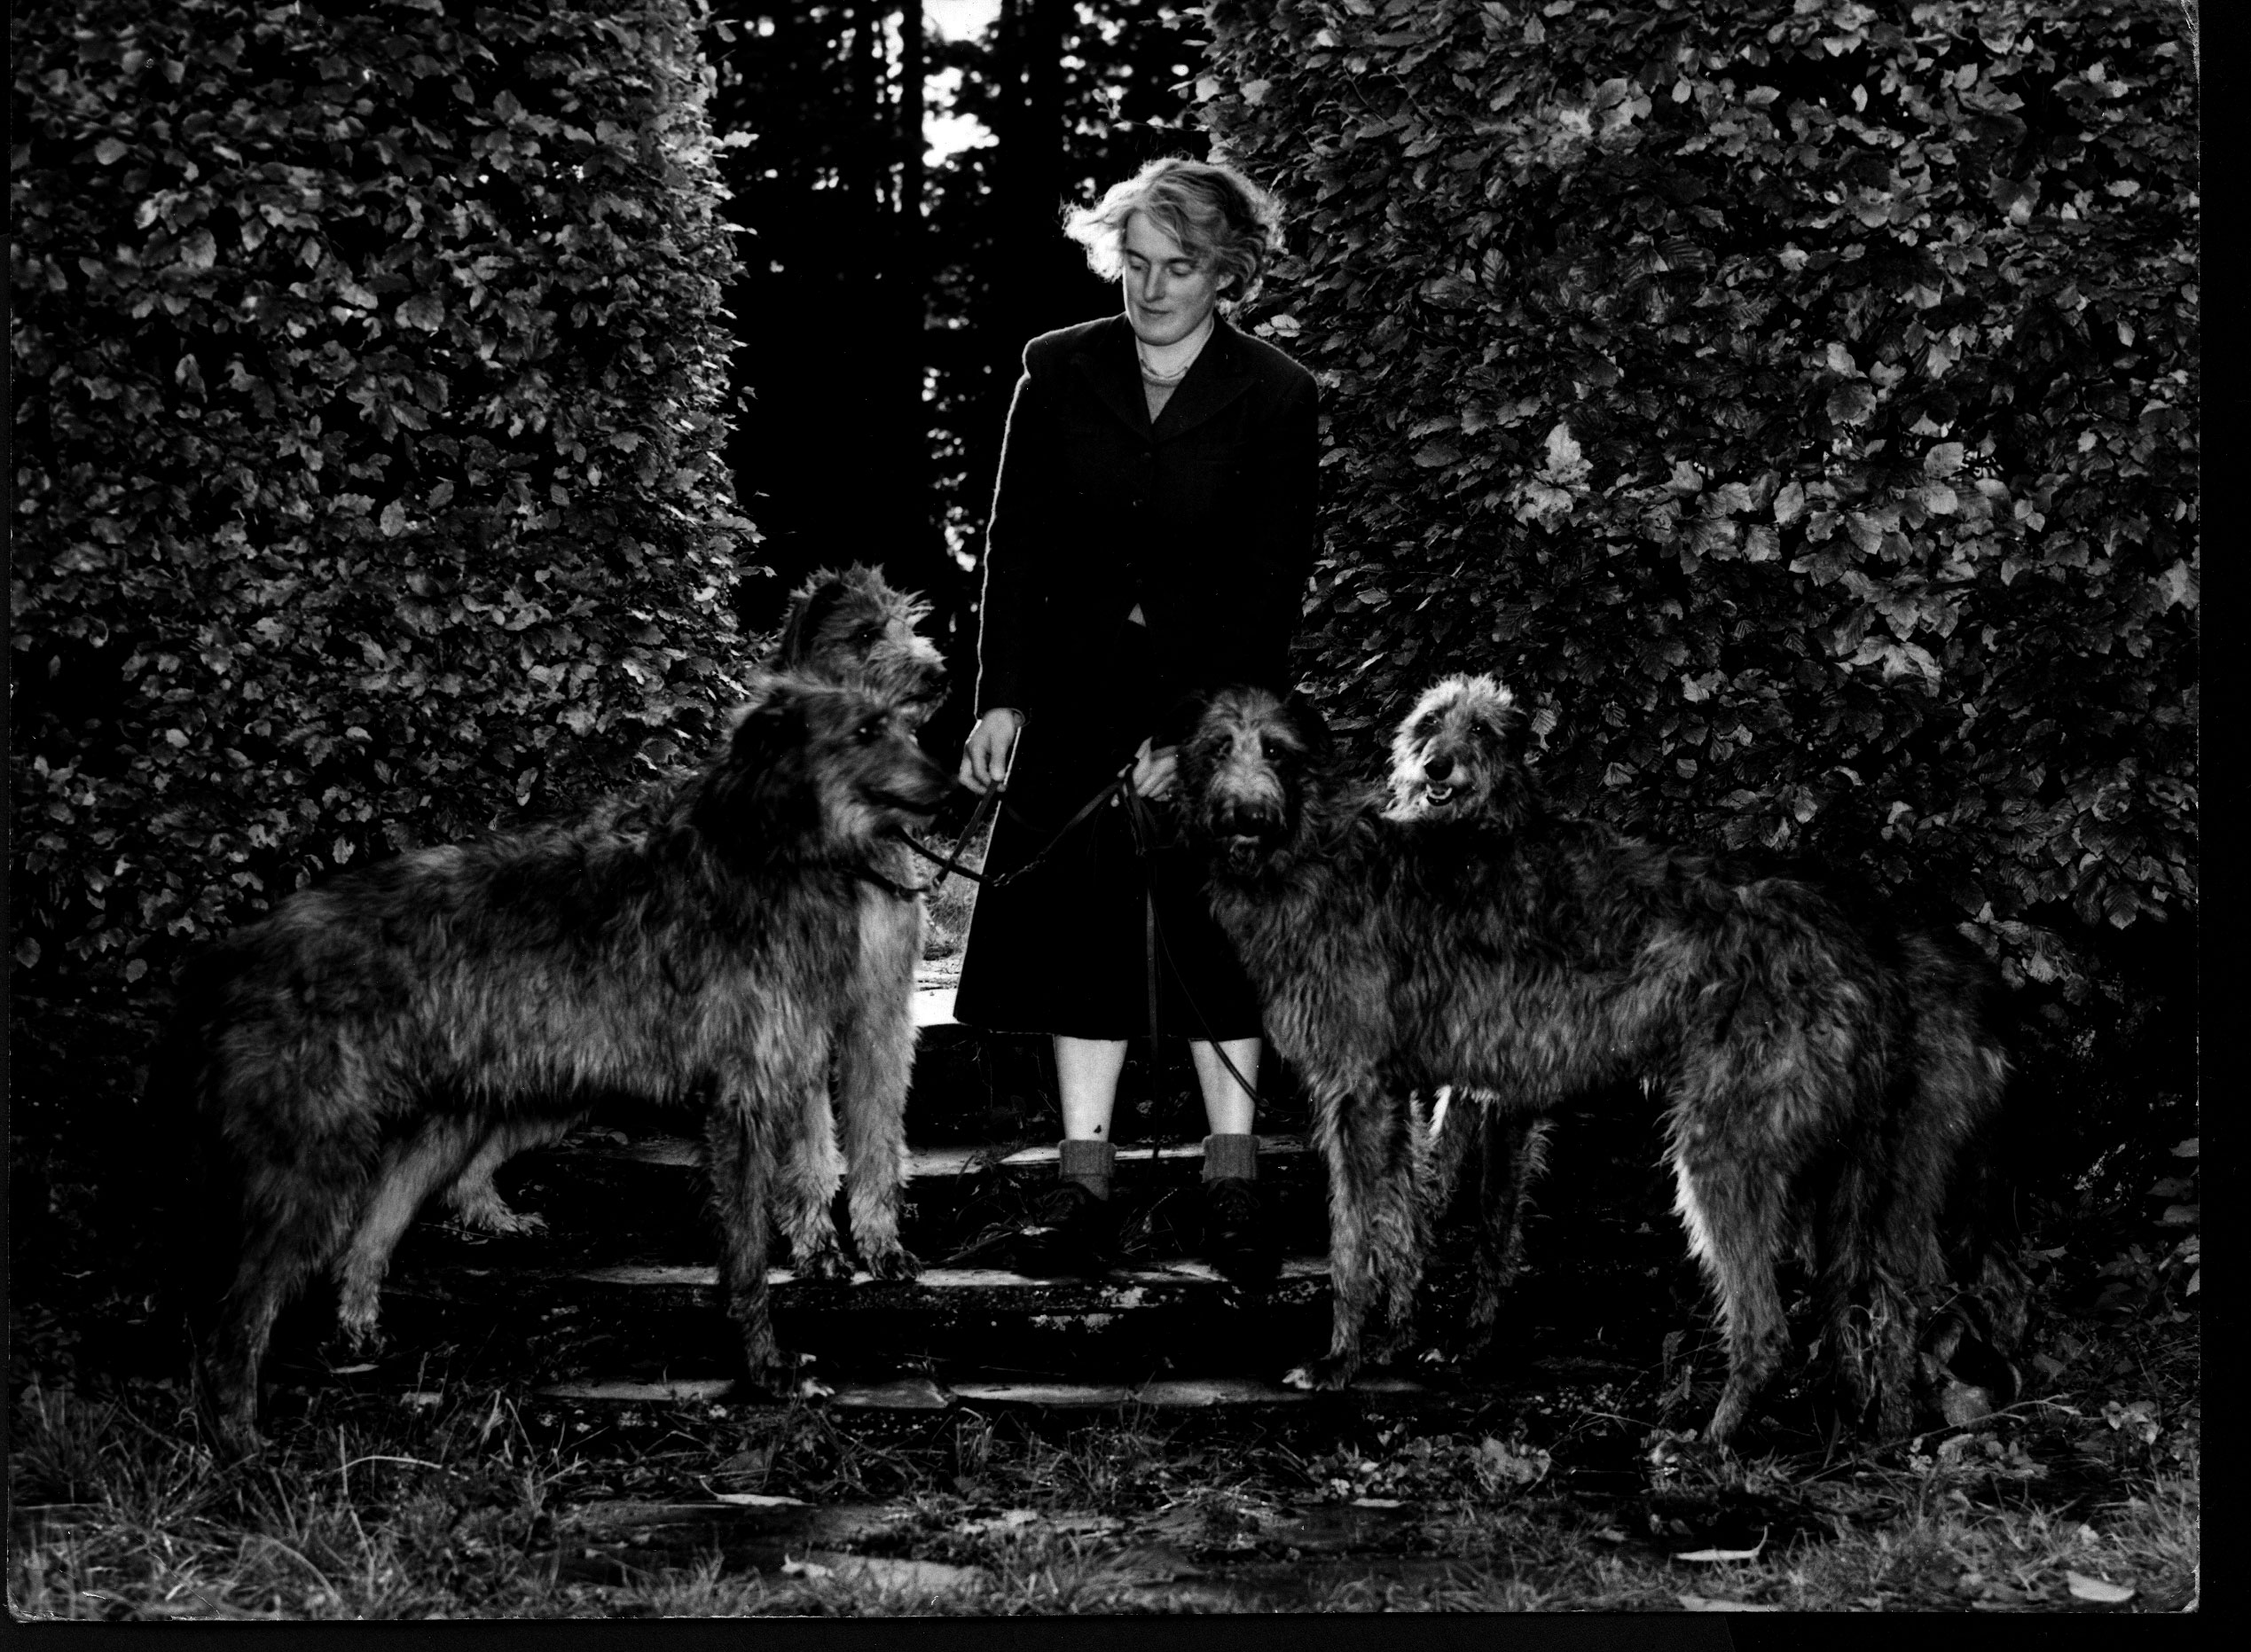 1954 picture of, from left to right Ch. Monarch of Ardkinglas b. 1945 Timber Wolf of Twinkling x Aphra Dubh Nicola of Ardkinglas b. 1952 Ch. Louis of Ardkinglas x Kirsty of Ardkinglas Ch. Lydia of Ardkinglas b. 1950 Ch. Monarch of Ardkinglas x Enterkine Miranda Ch. Ardkinglas Rauri of Portsonochan b. 1952 Ch. Louis of Ardkinglas x Enterkine Belinda